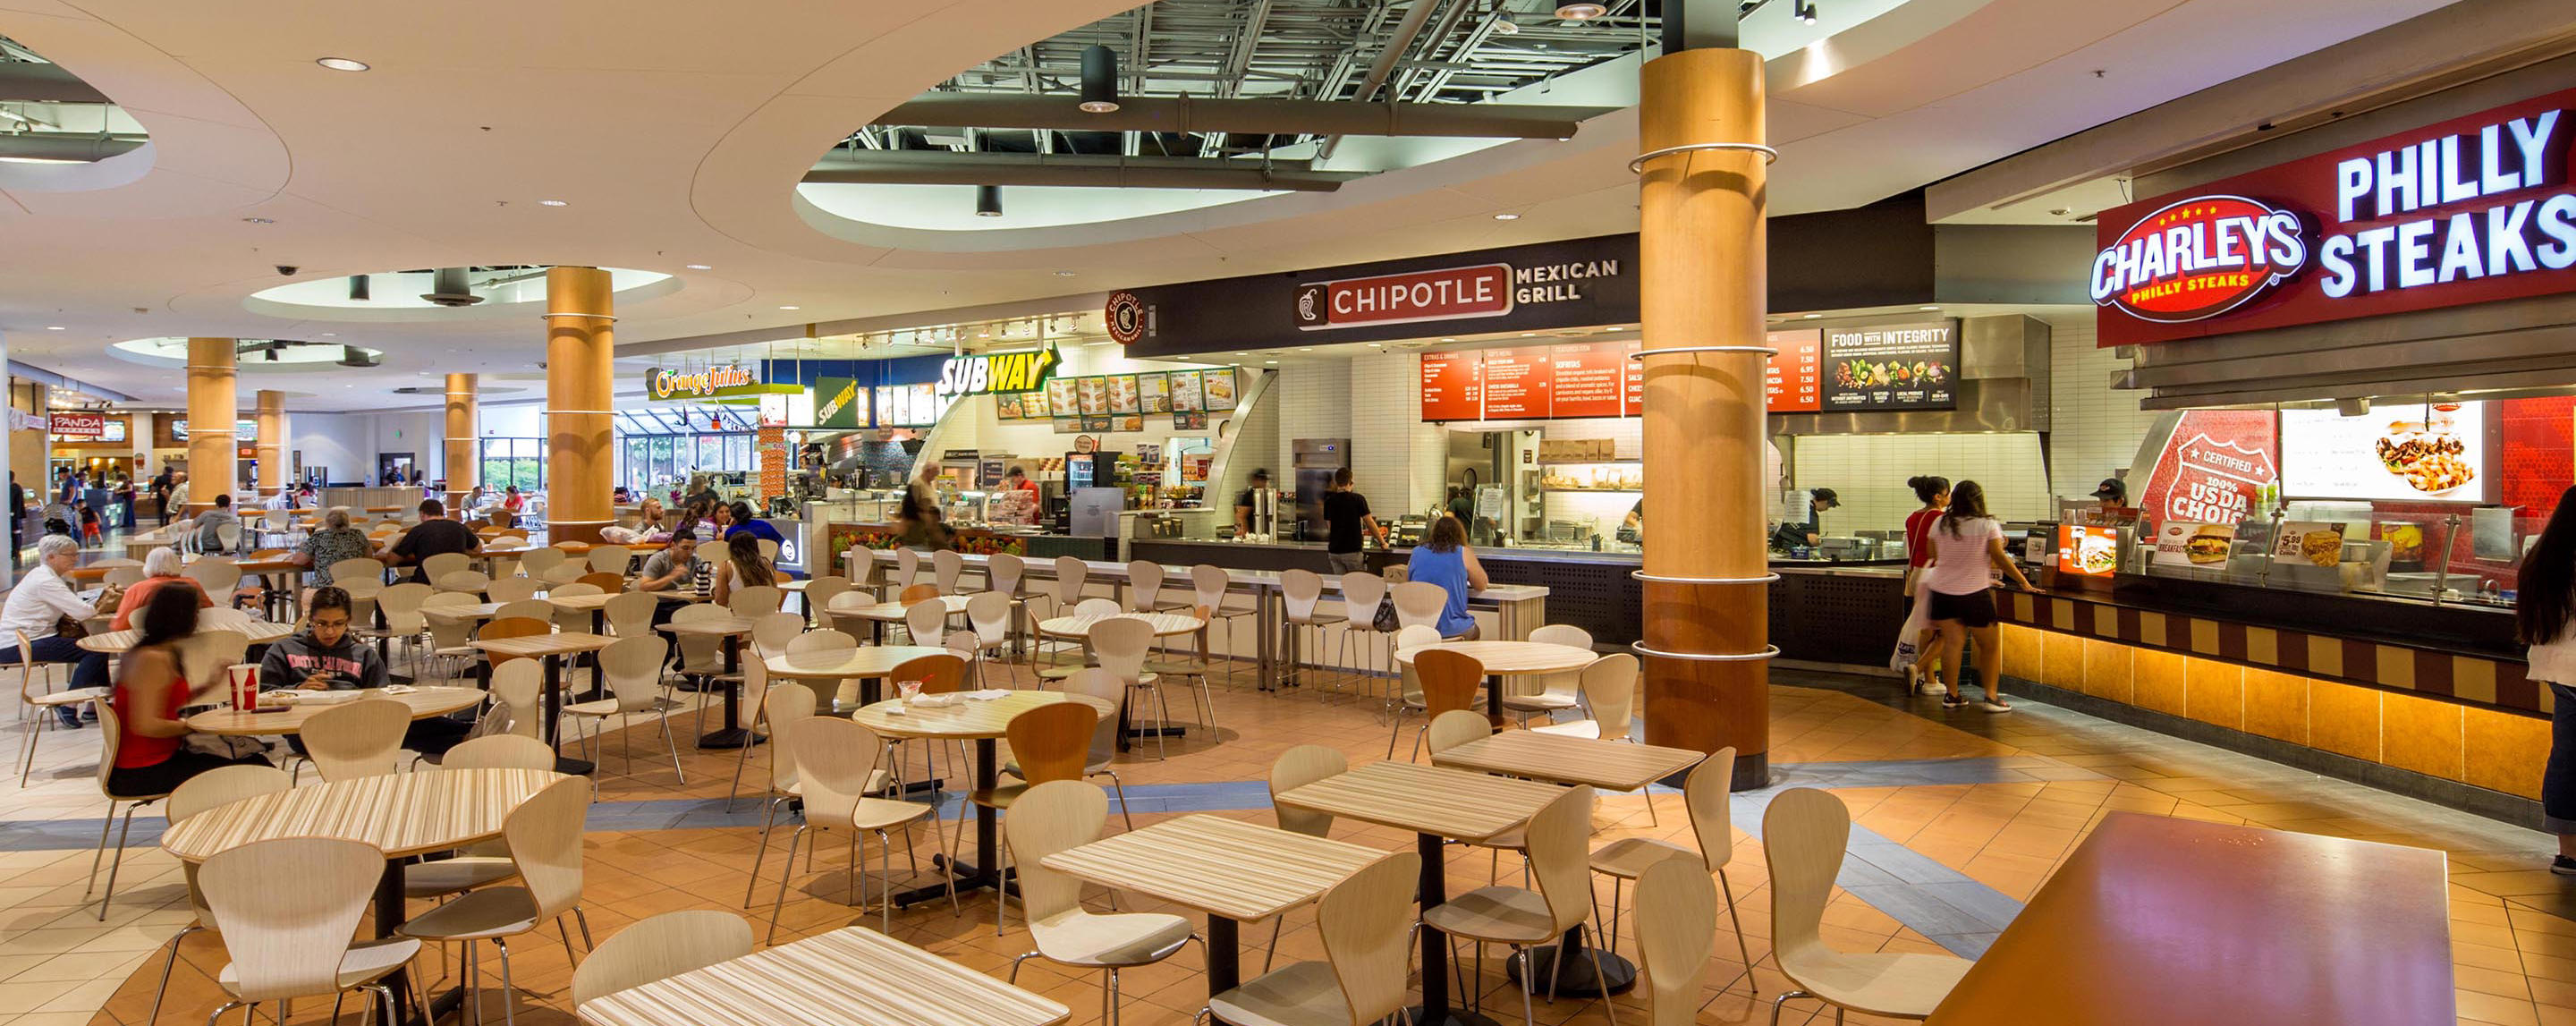 Tucson Mall's food court is set up with various tables and chairs for shoppers to take a break and eat.